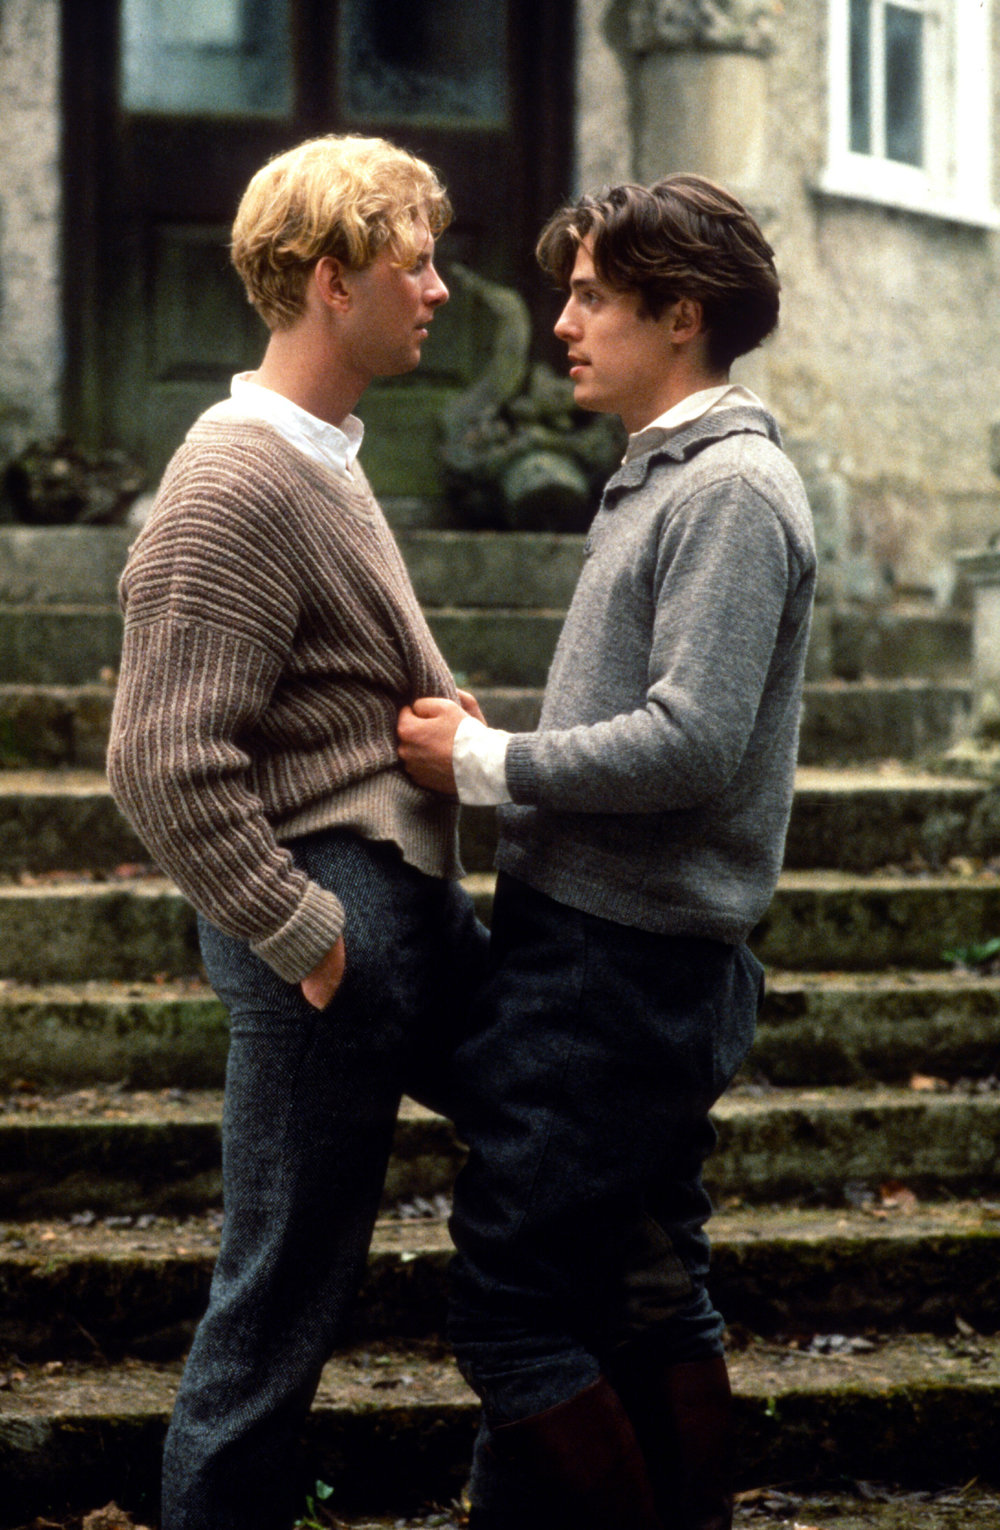 James Wilby (as Maurice Hall) and Hugh Grant (as Clive Durham). Photo courtesy of Photofest.